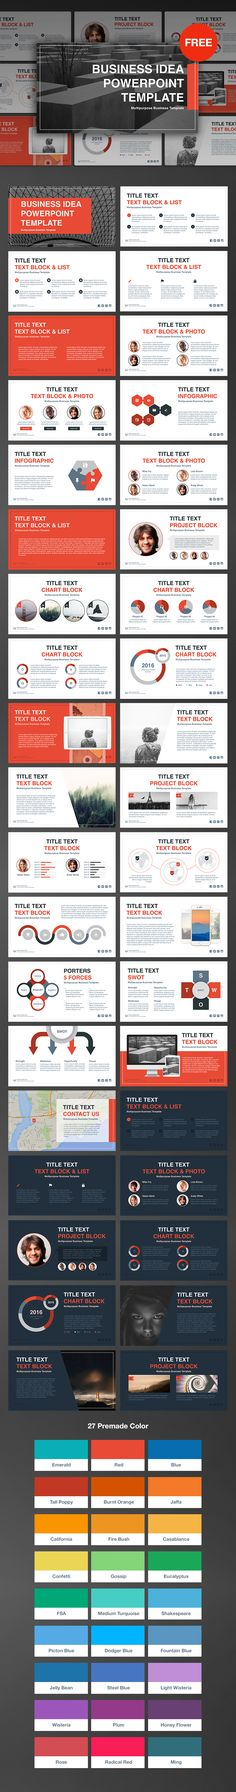 """FREE DOWNLOAD PowerPoint Template: http://site2max.pro/business-idea-free-powerpoint-template/ 31 slides, PPTX format, 16:9 HD, free support, 27 premade color, """"drag & drop"""", light & dark versions.  #free #freebie #freebies #ppt #pptx #powerpoint #template #theme #site2max #design #red #emerald #hd #business #idea #marketing"""